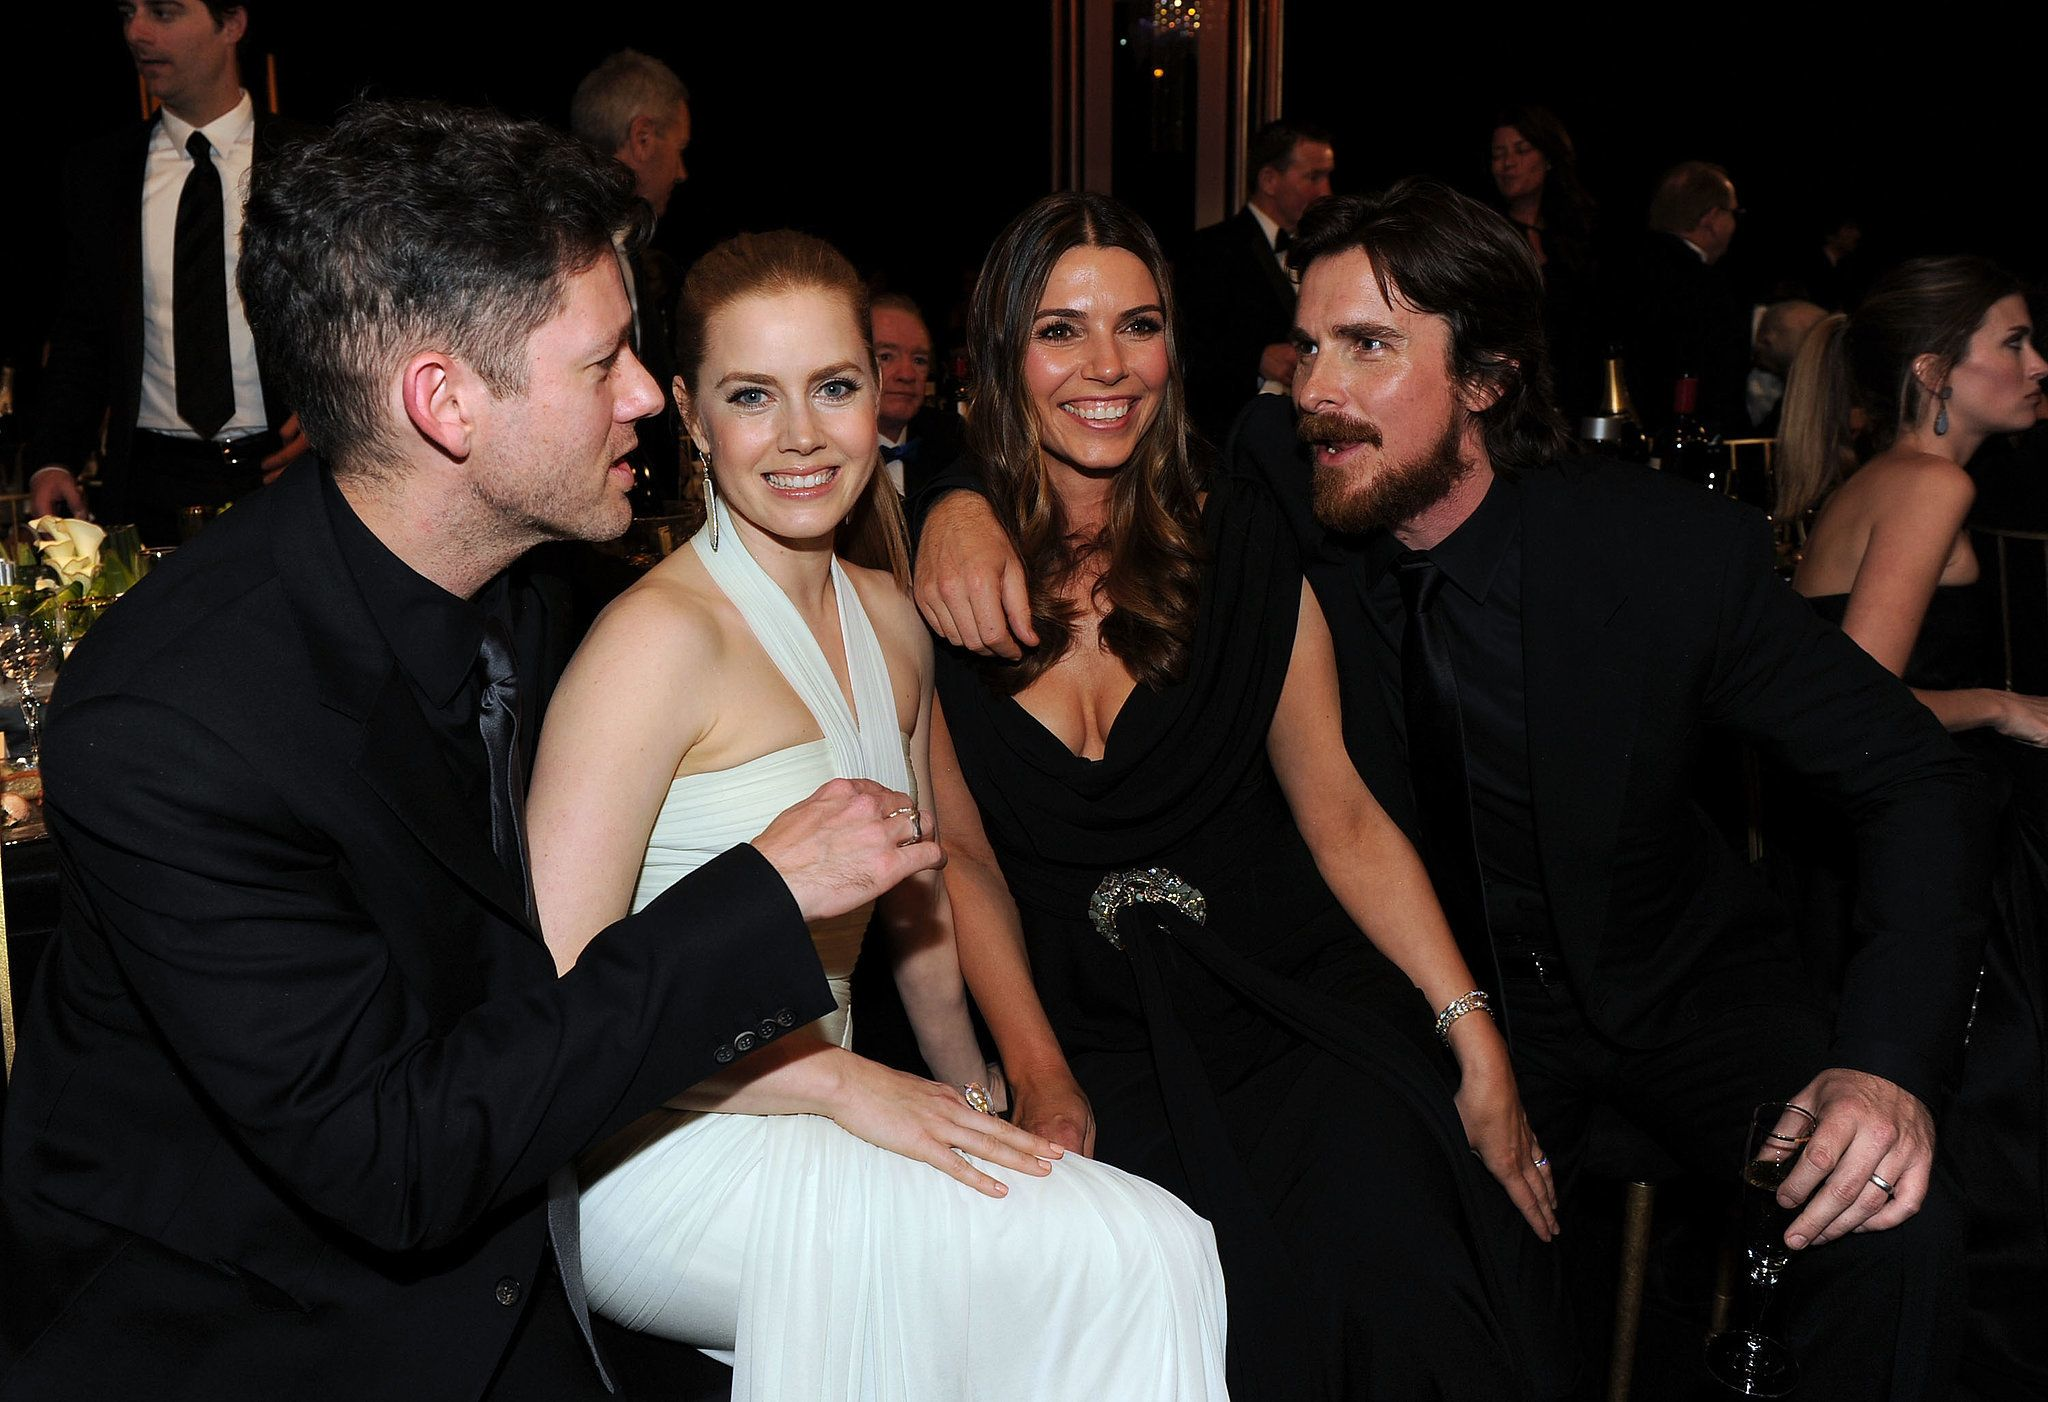 Back in 2011 the pair chatted up amy s american hustle costar christian bale and his